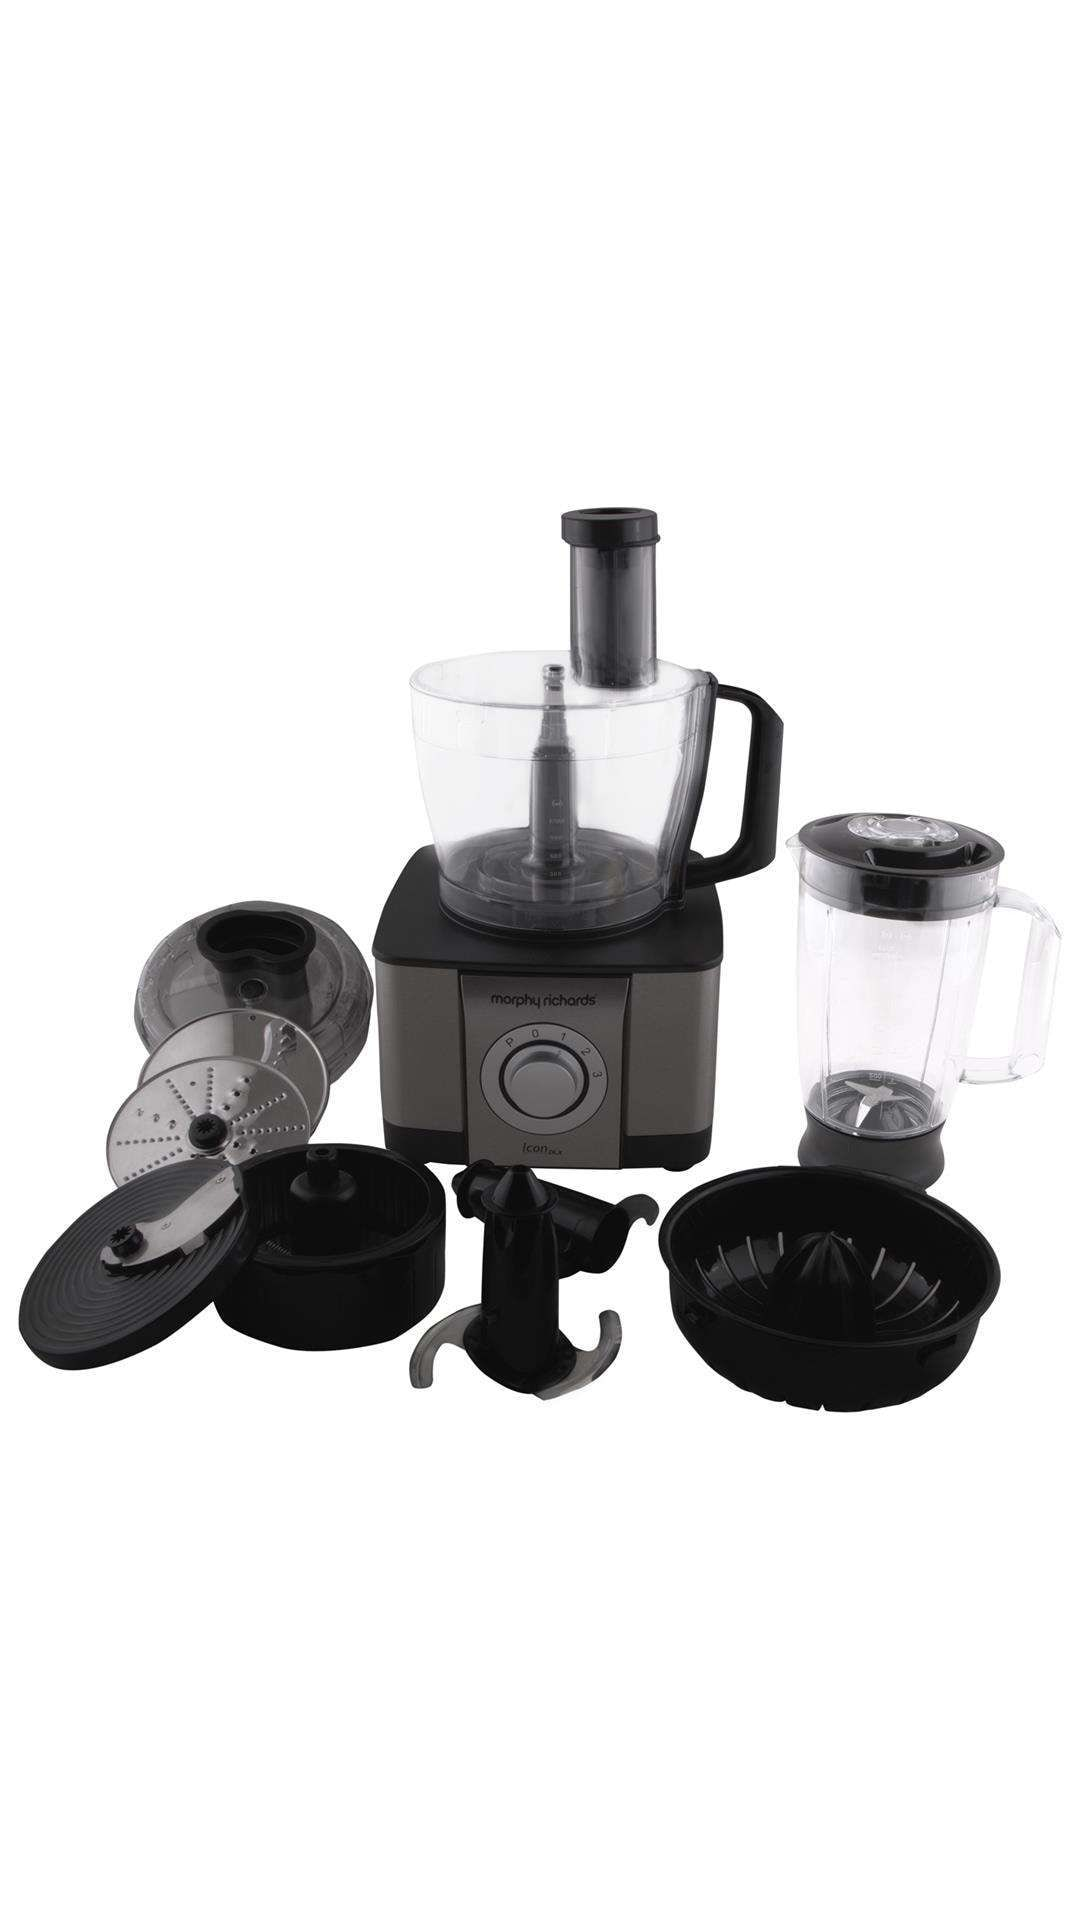 Morphy Richards Icon DLX 1000 W Food Processor (Steel Black)